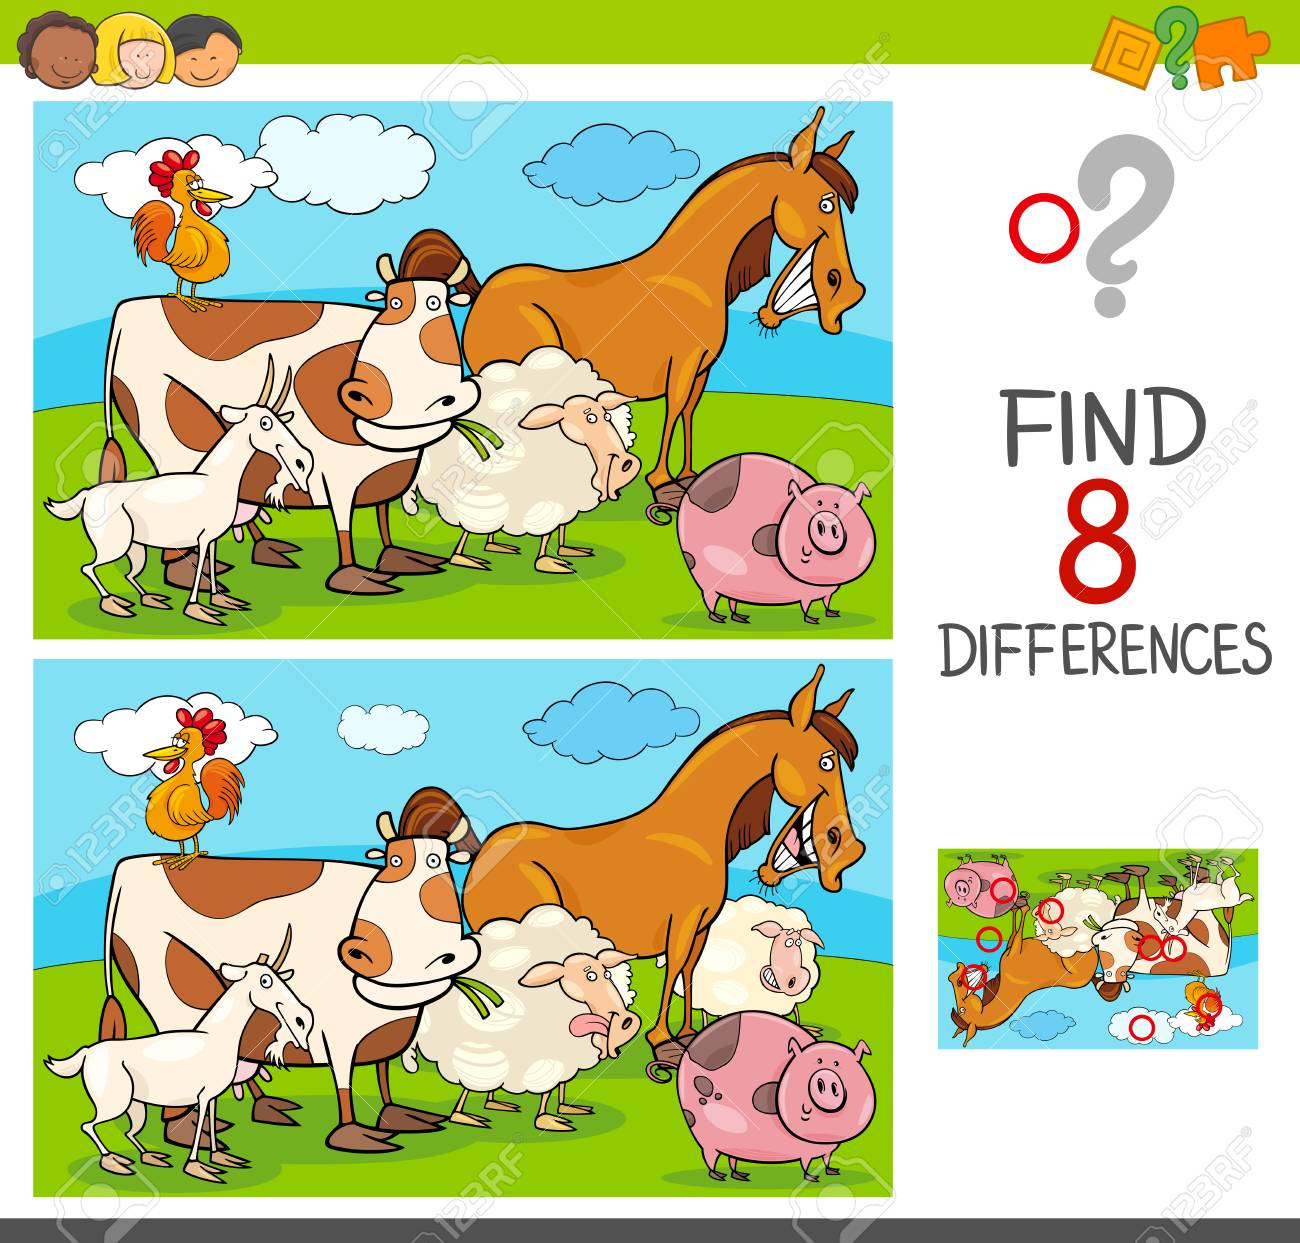 Enjoy the best find differences games for free